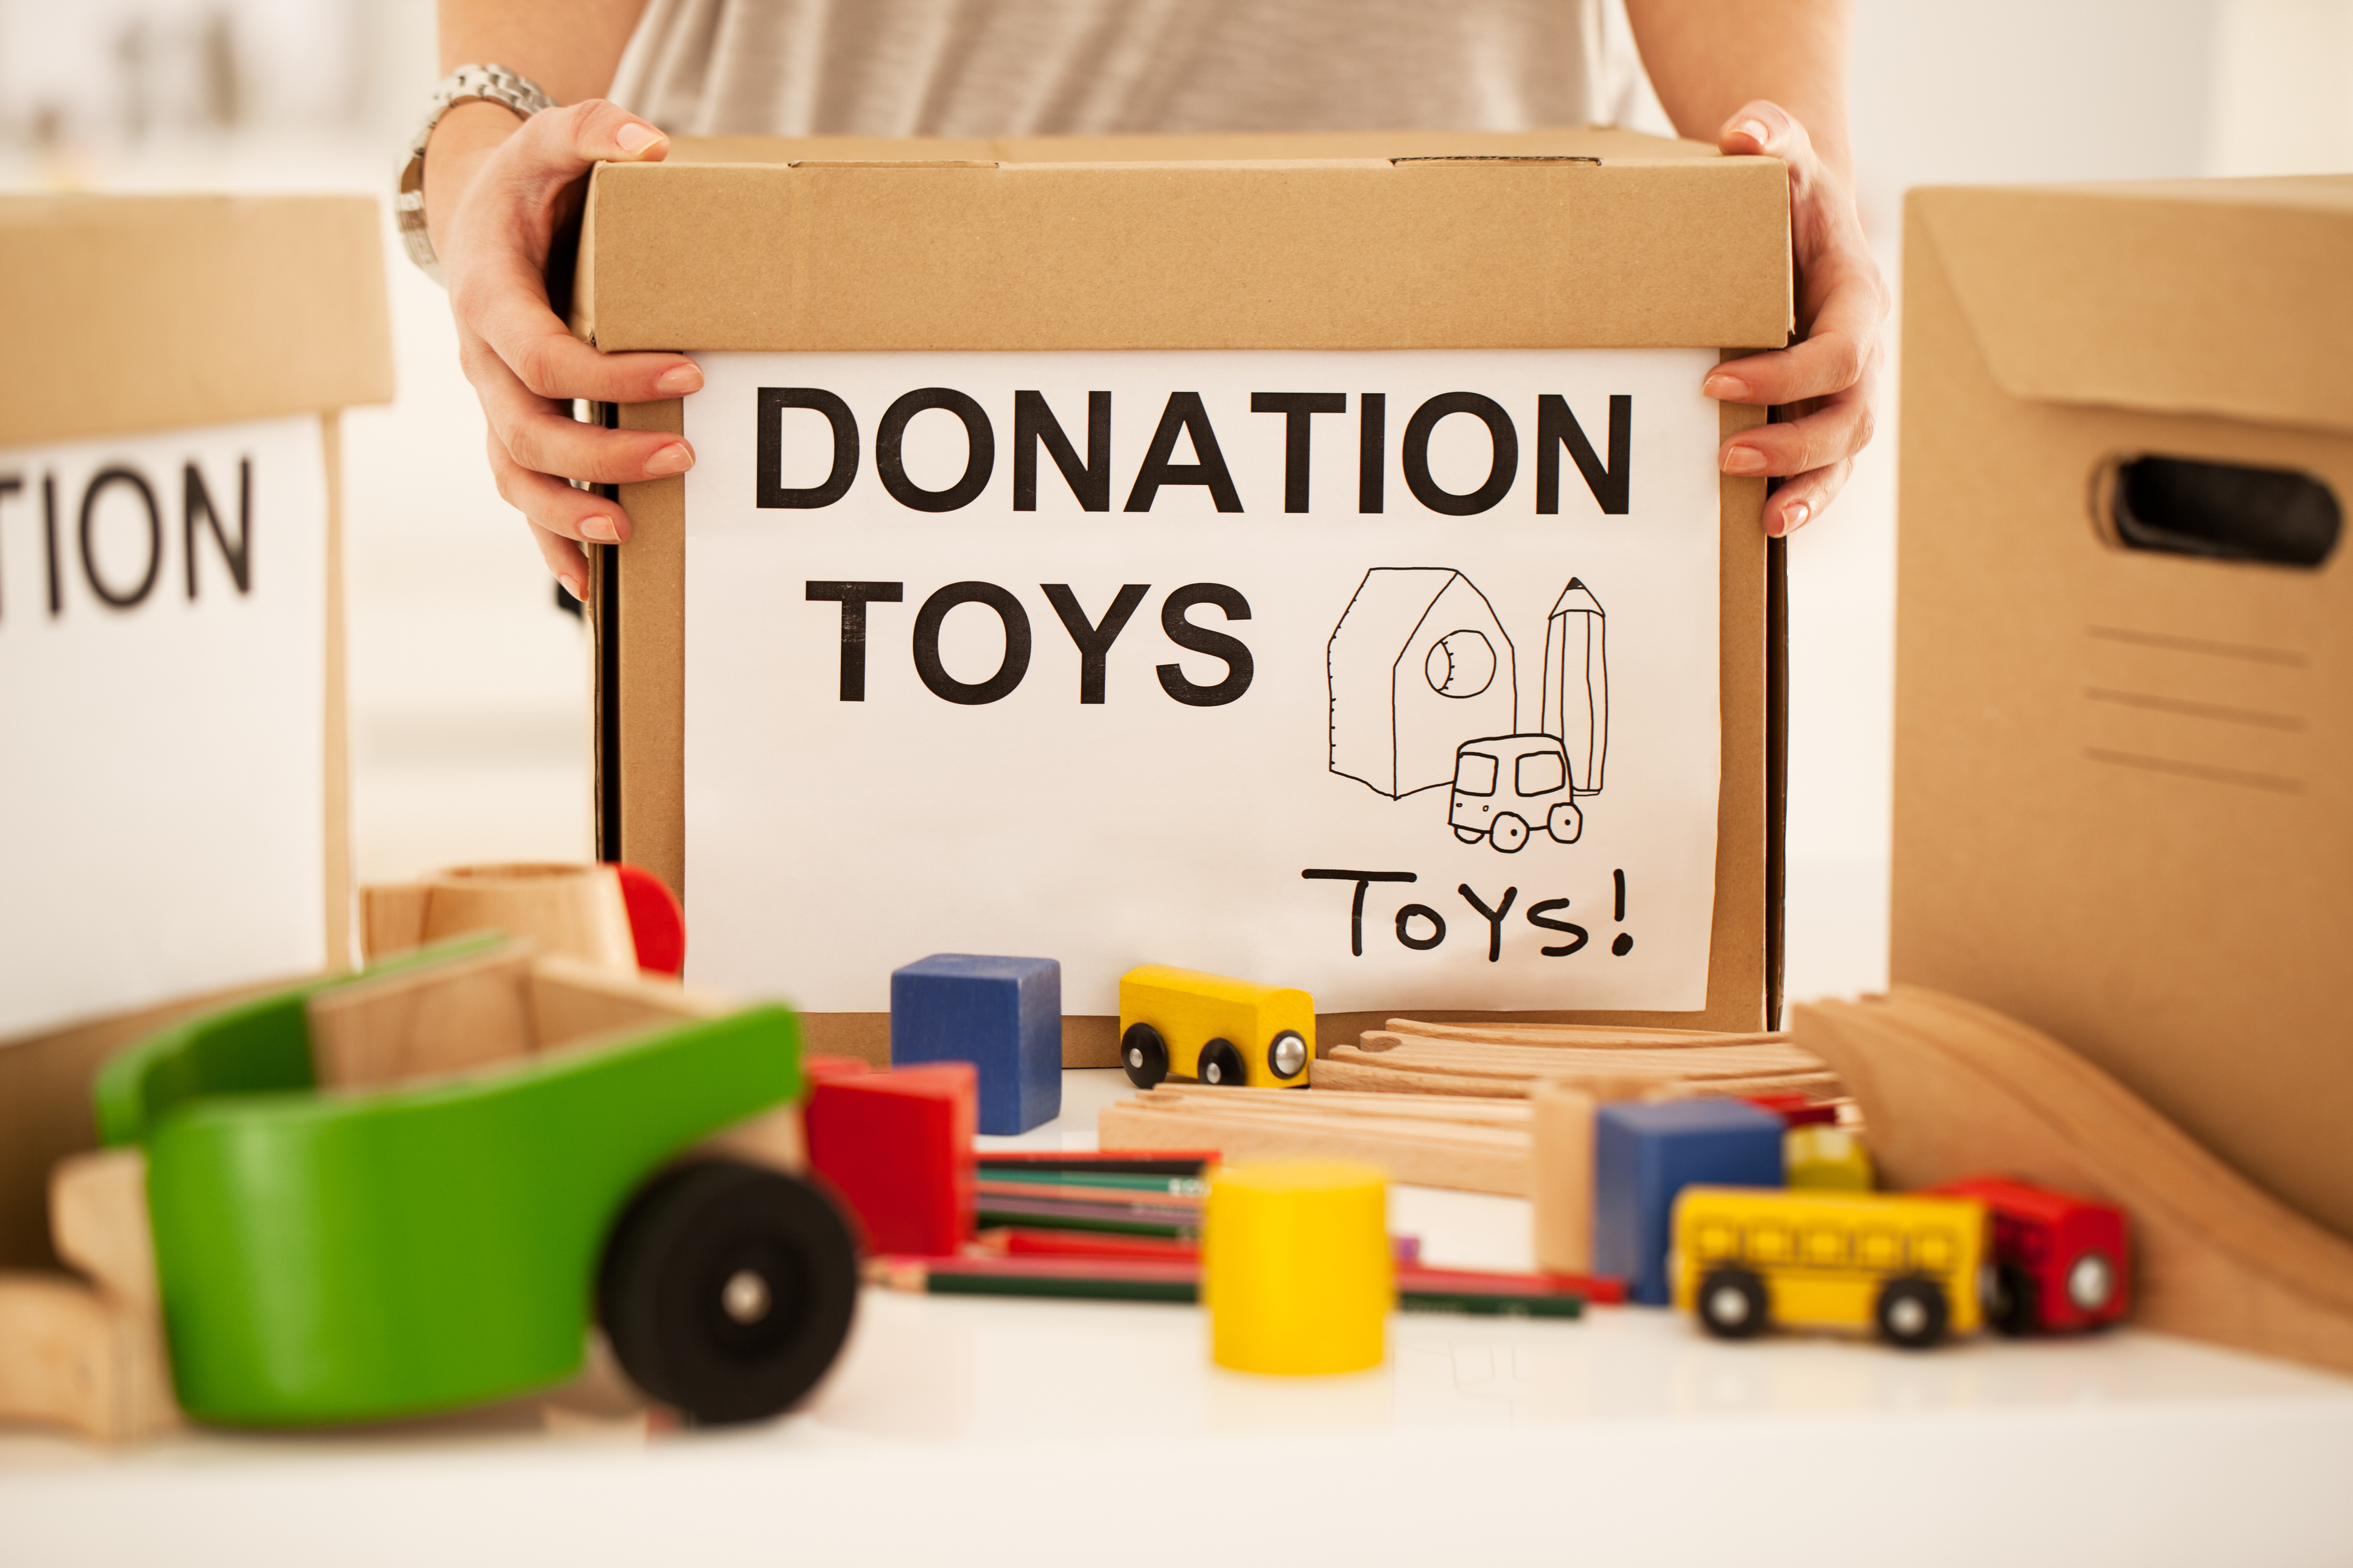 Toy Donation Application : Donating toys wow